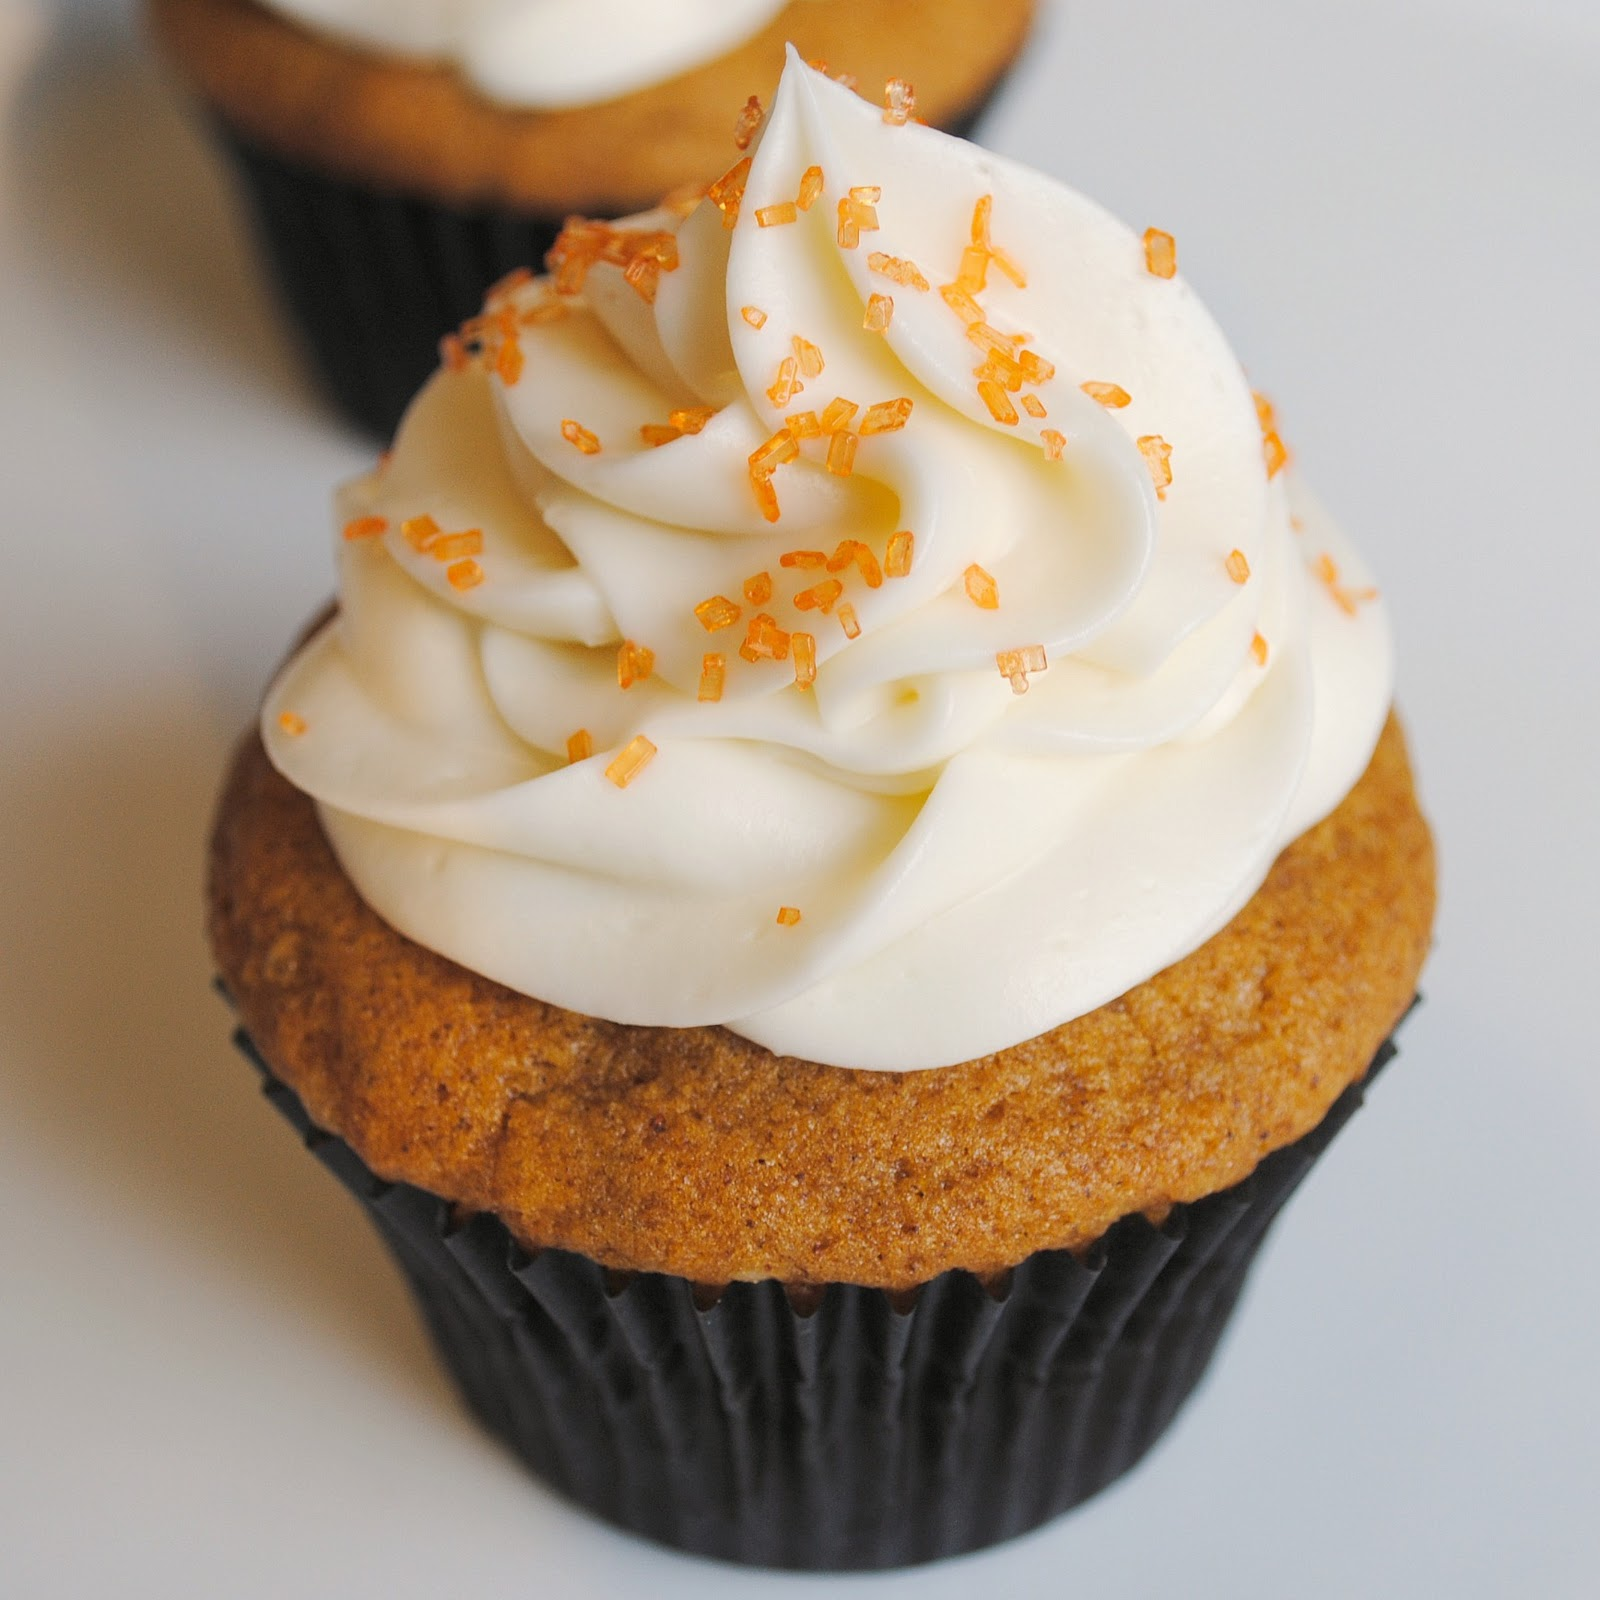 Pumpkin Cupcakes Recipe Awesome Of Pumpkin Cupcakes Picture